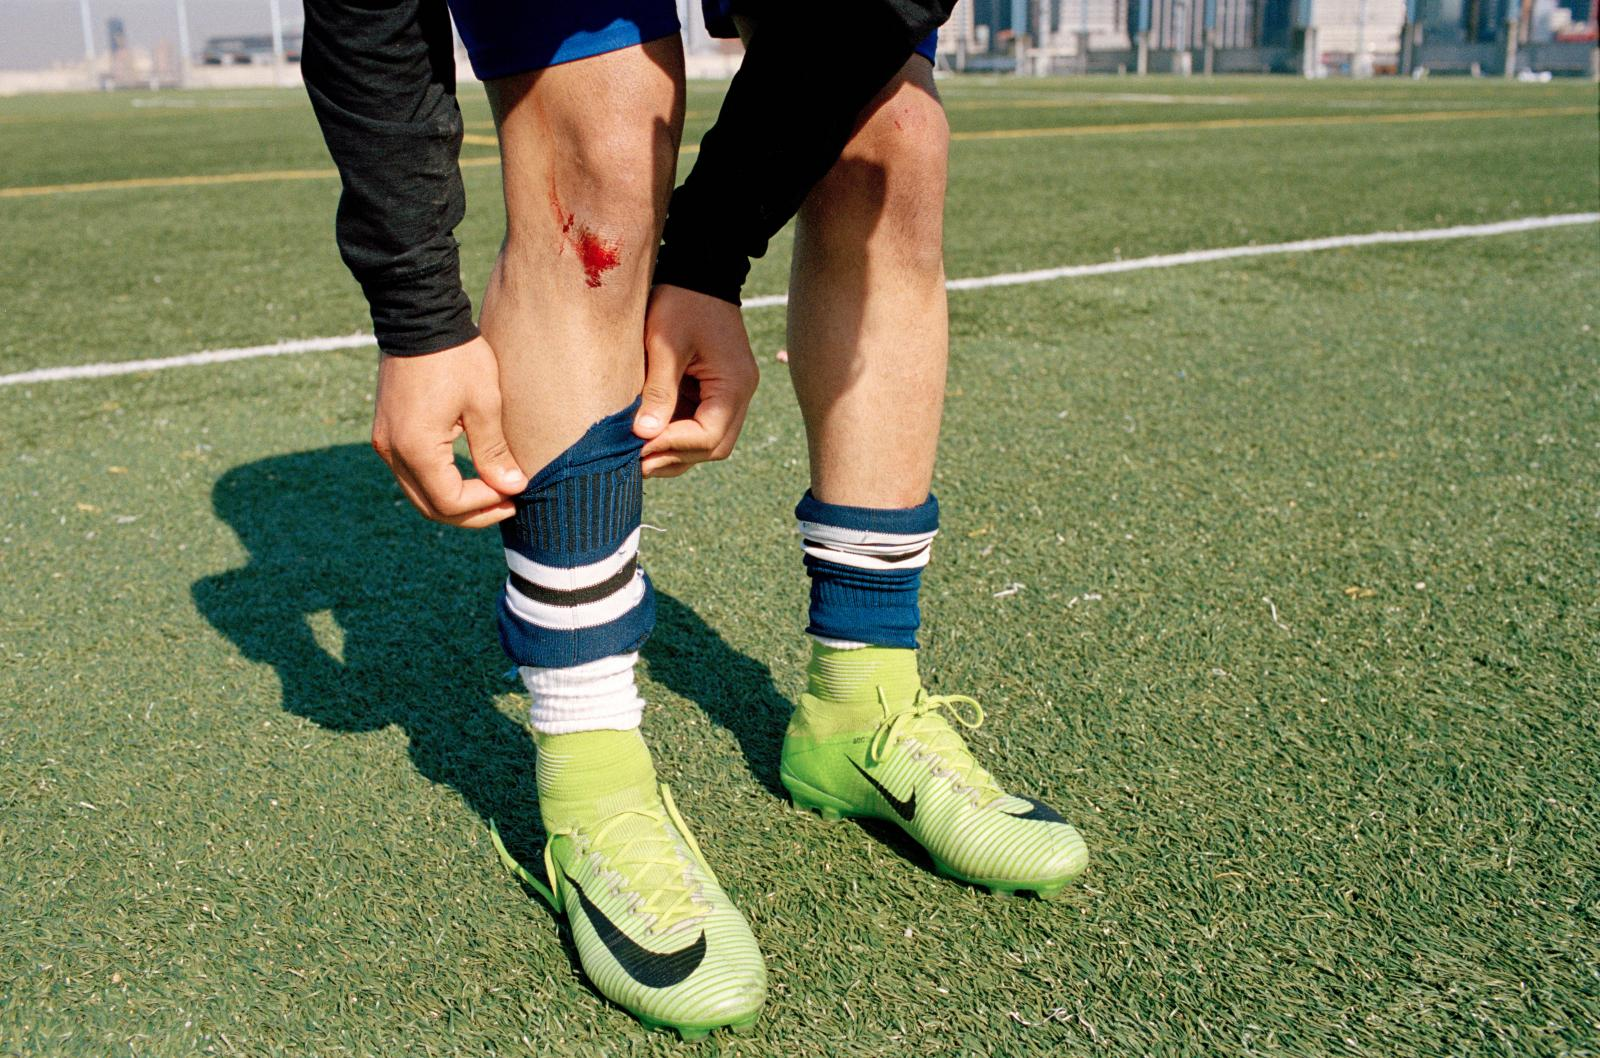 Atiff Rageh fixes his socks after getting a cleat to the knee cap during a training session with the Yemen United Soccer Team in Brooklyn, New York.